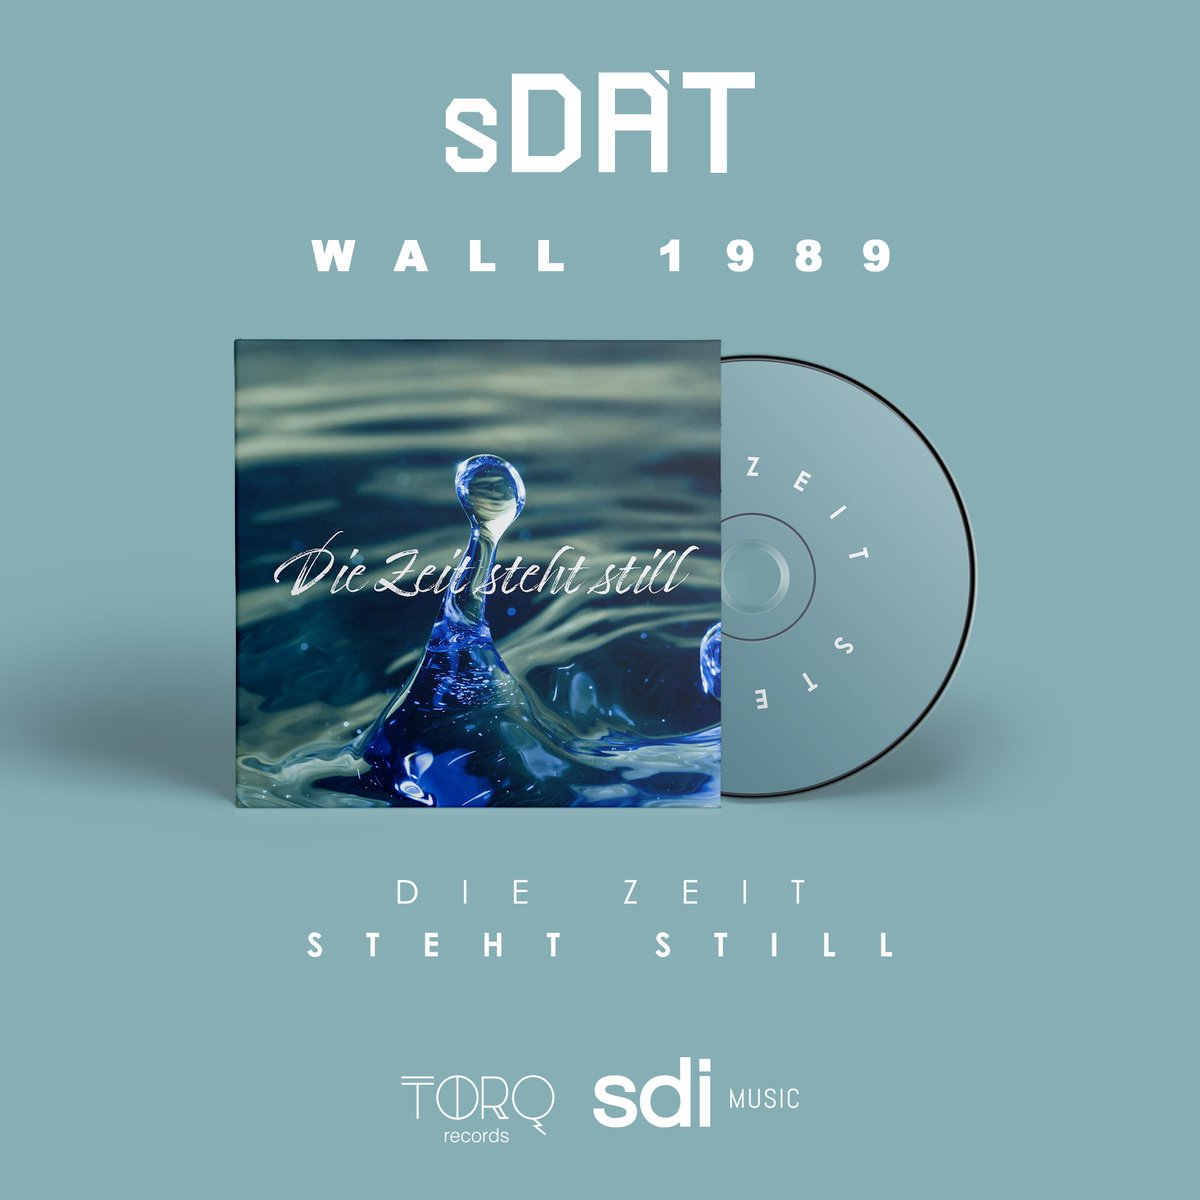 Wall 1989 by Sdat, is on the Die Zeit Steht Still Compilation and the genre of the track is techno.   #techno #berlin #deutschland #berlinwall #berlinmusic #technomusic #night #life #recordlabel #subculture #track #newtrack #wave #street #electro #electroclashpic.twitter.com/u4811uwWXp